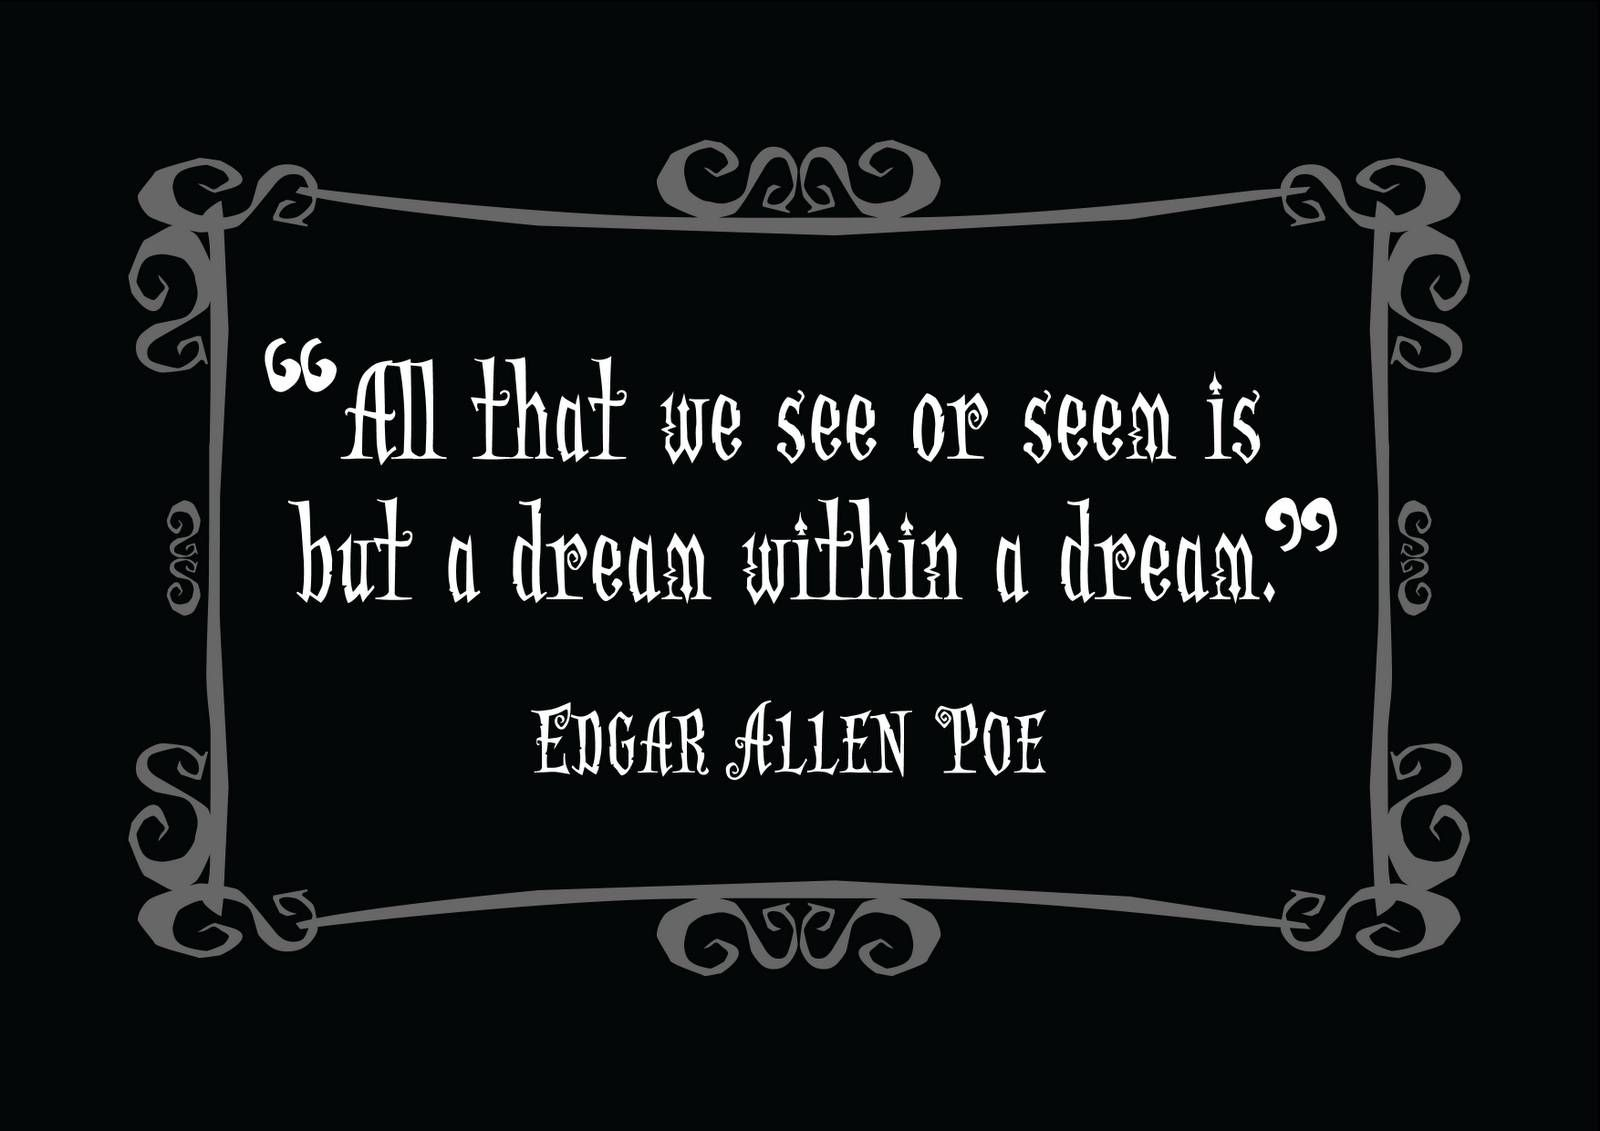 Edgar Allan Poe Life Quotes Beauteous Edgar Allan Poe Quotes On Music  Google Search  Edgar Allan Poe